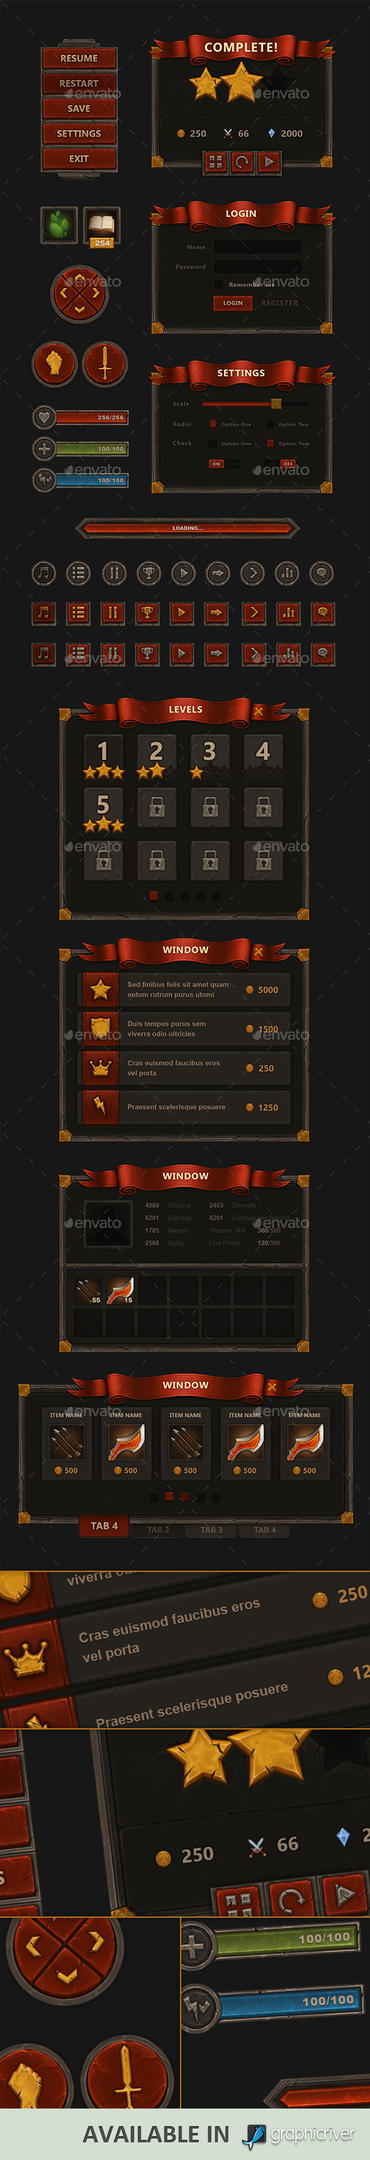 Fantasy Mobile Game Interface by Evil-S